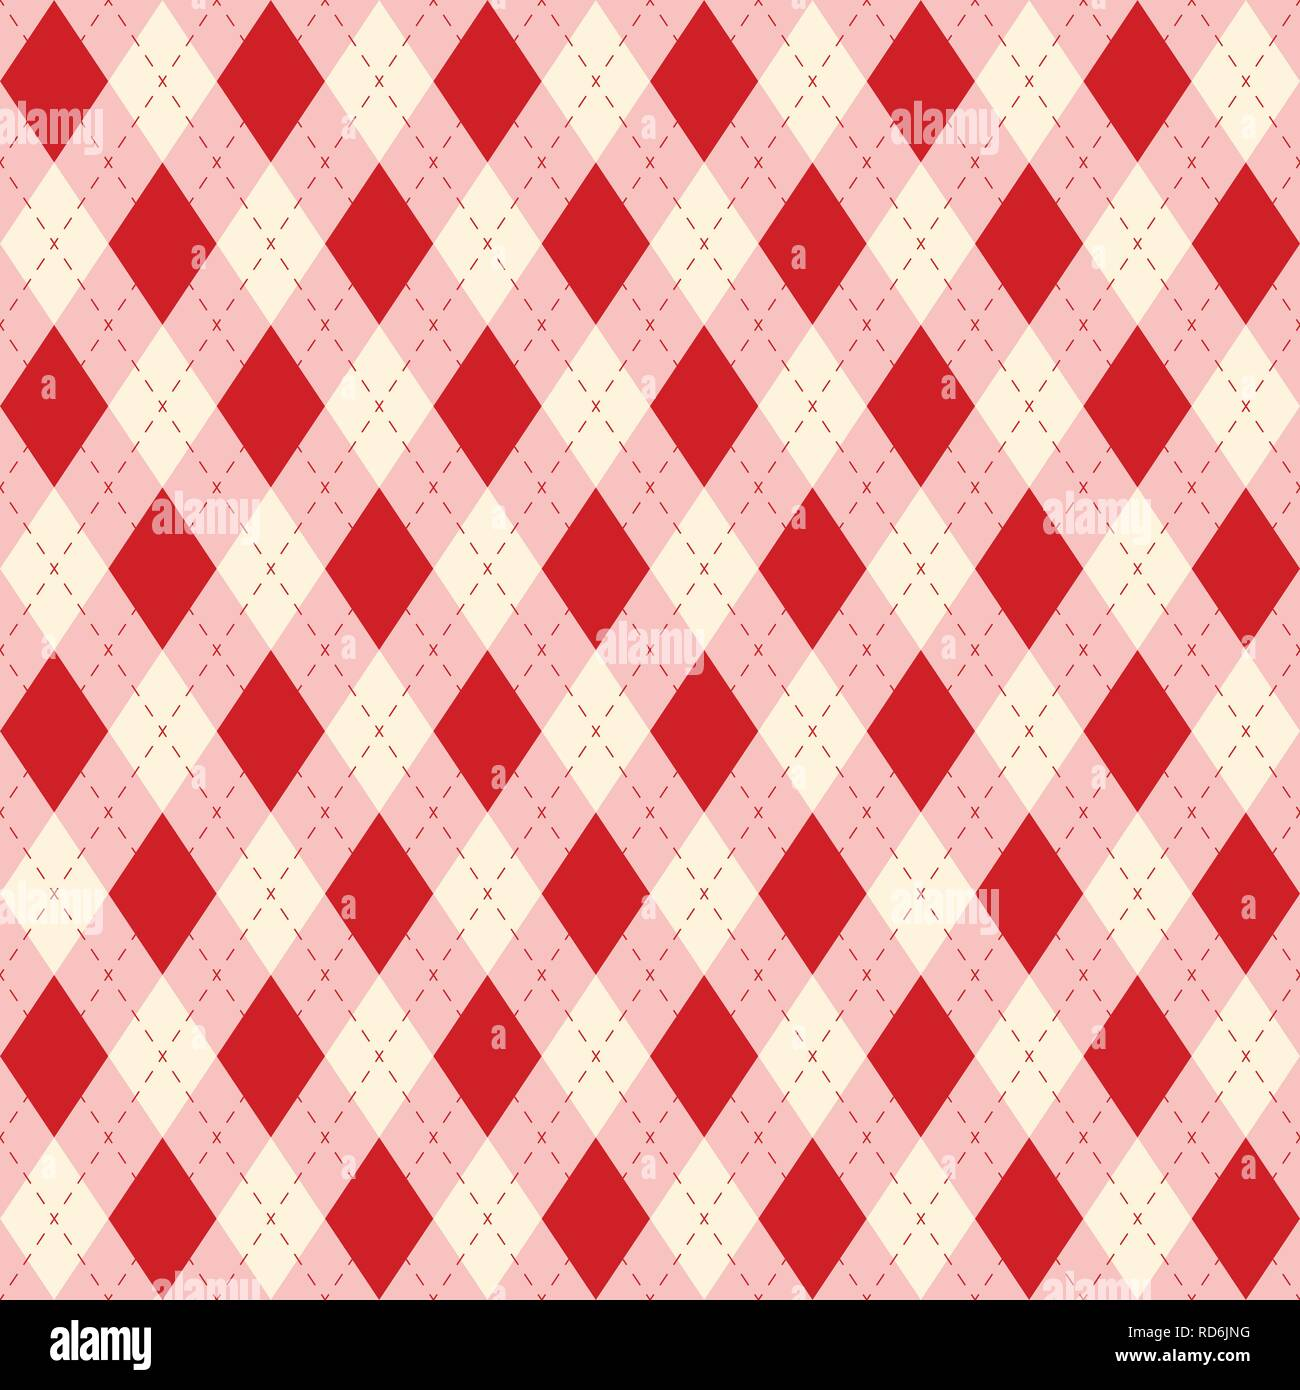 Seamless color rhombuses pattern/ texture for home decorating, Thanksgiving, napkins, tablecloths, picnics, arts, crafts and scrap books. Seamless fab - Stock Vector